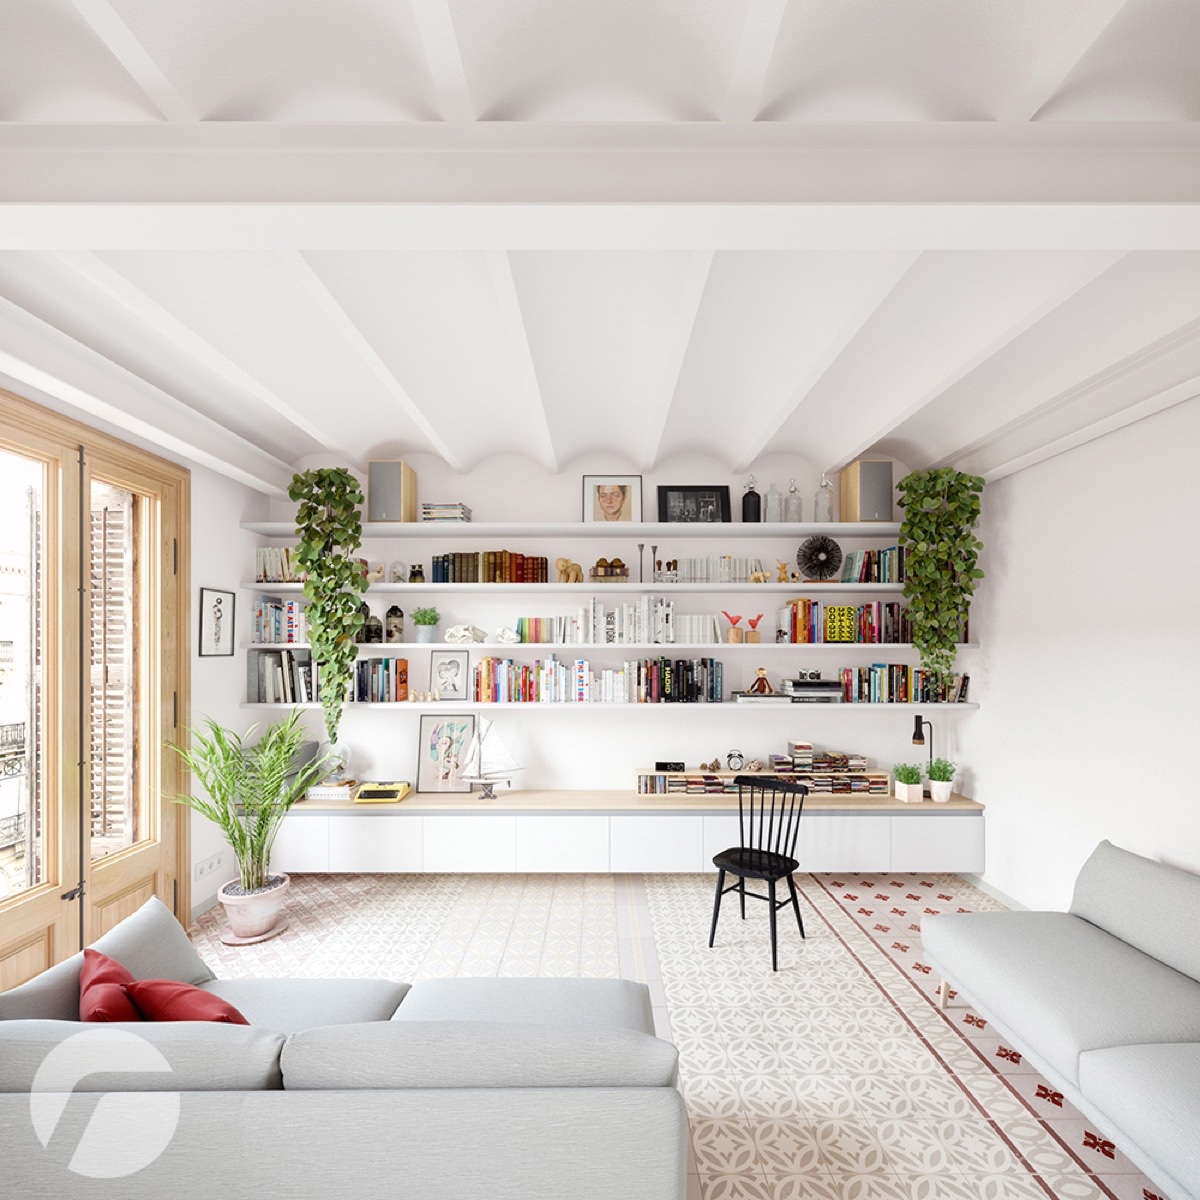 Modern Nordic Home Inspiration - 10 stunning apartments that show off the beauty of nordic interior design